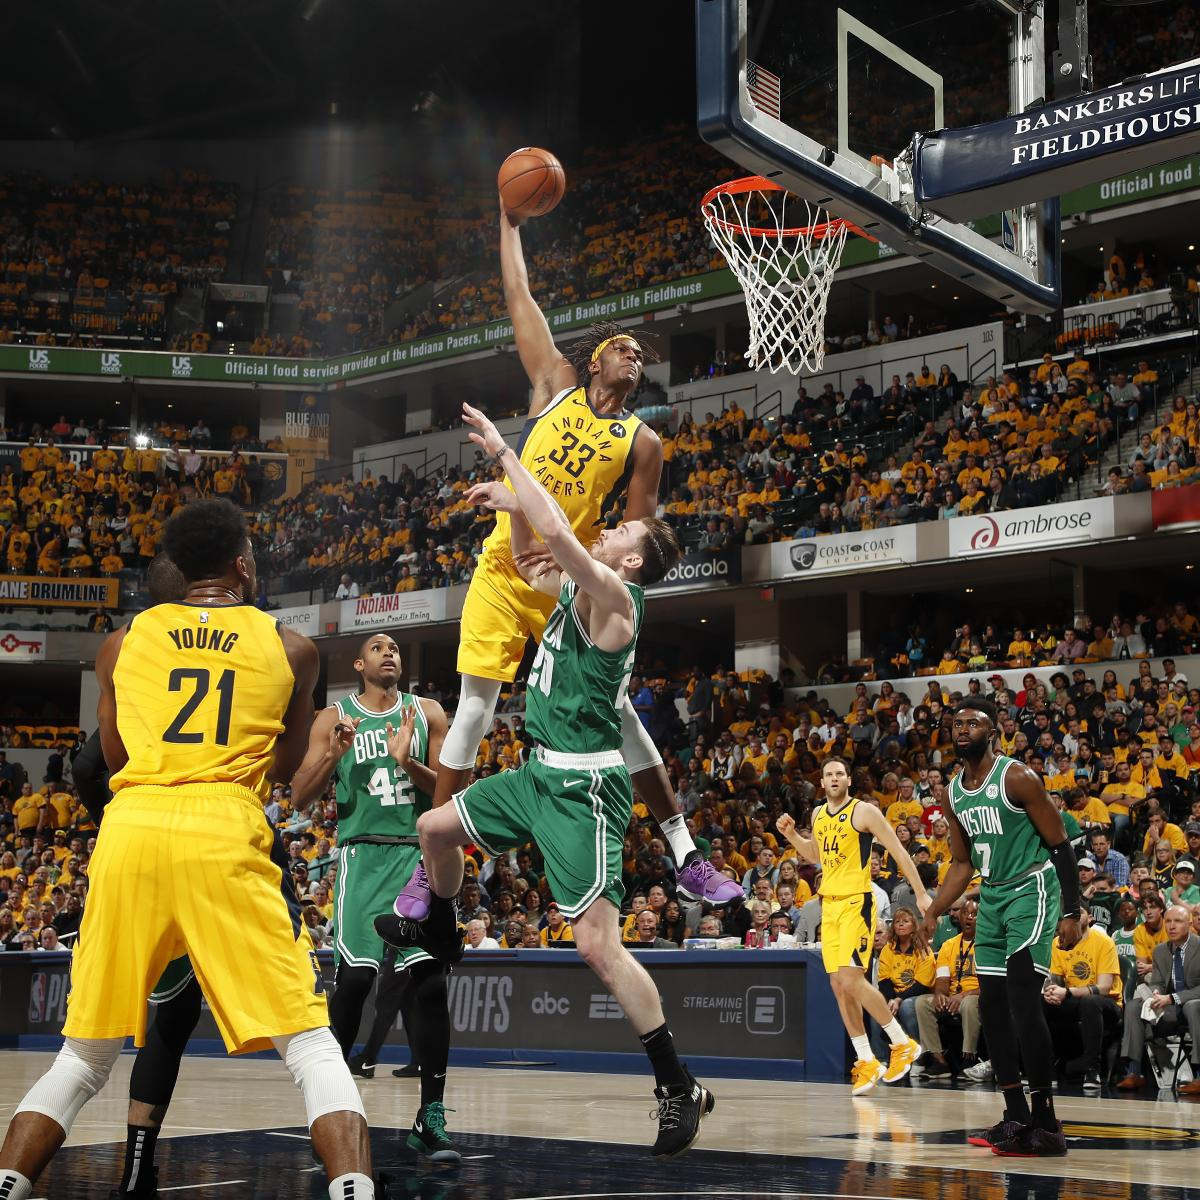 Celtics Vs Pacers Latest News, Photos and Videos